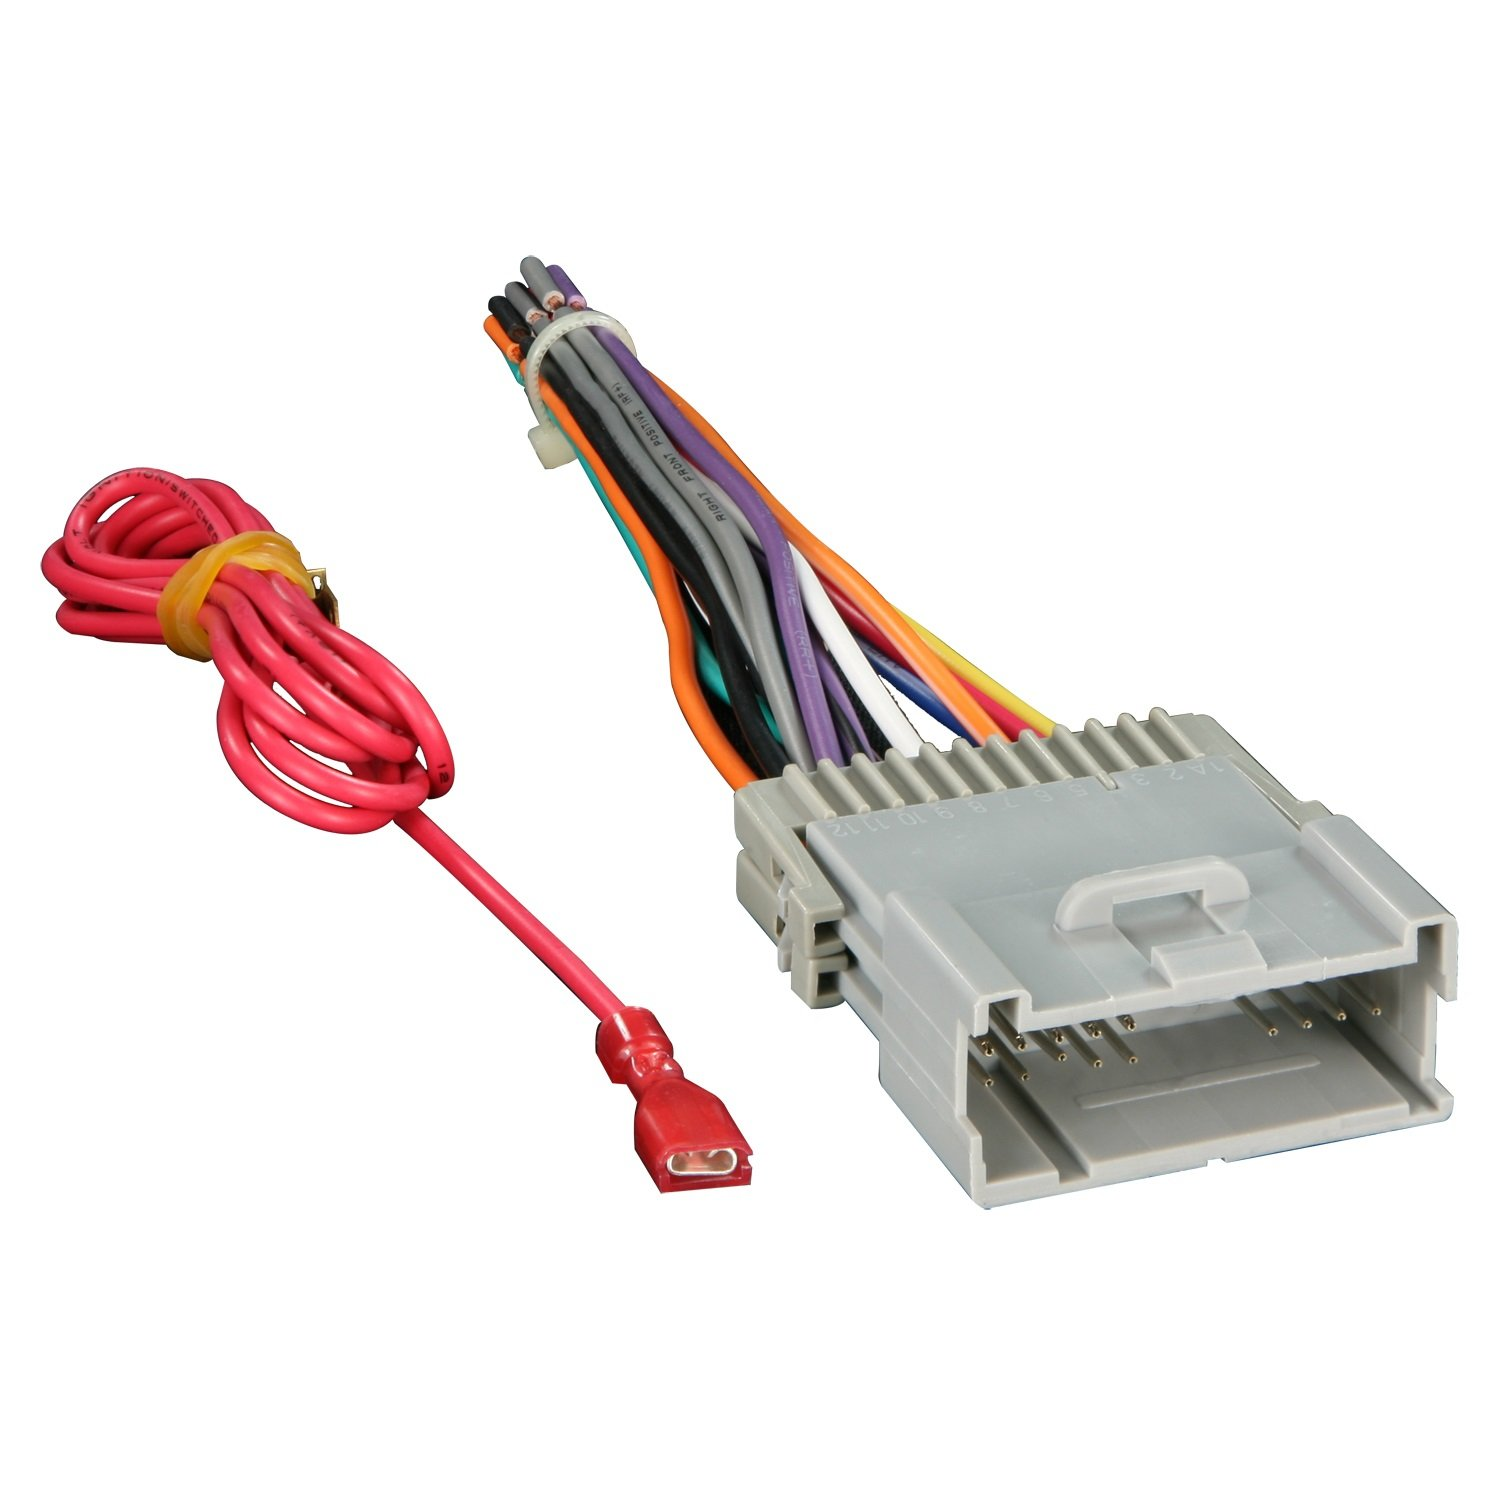 61eewxp9orL._SL1500_ amazon com metra 70 2003 radio wiring harness for gm 98 08 Wire Single Life 4 Harnesstionships at nearapp.co